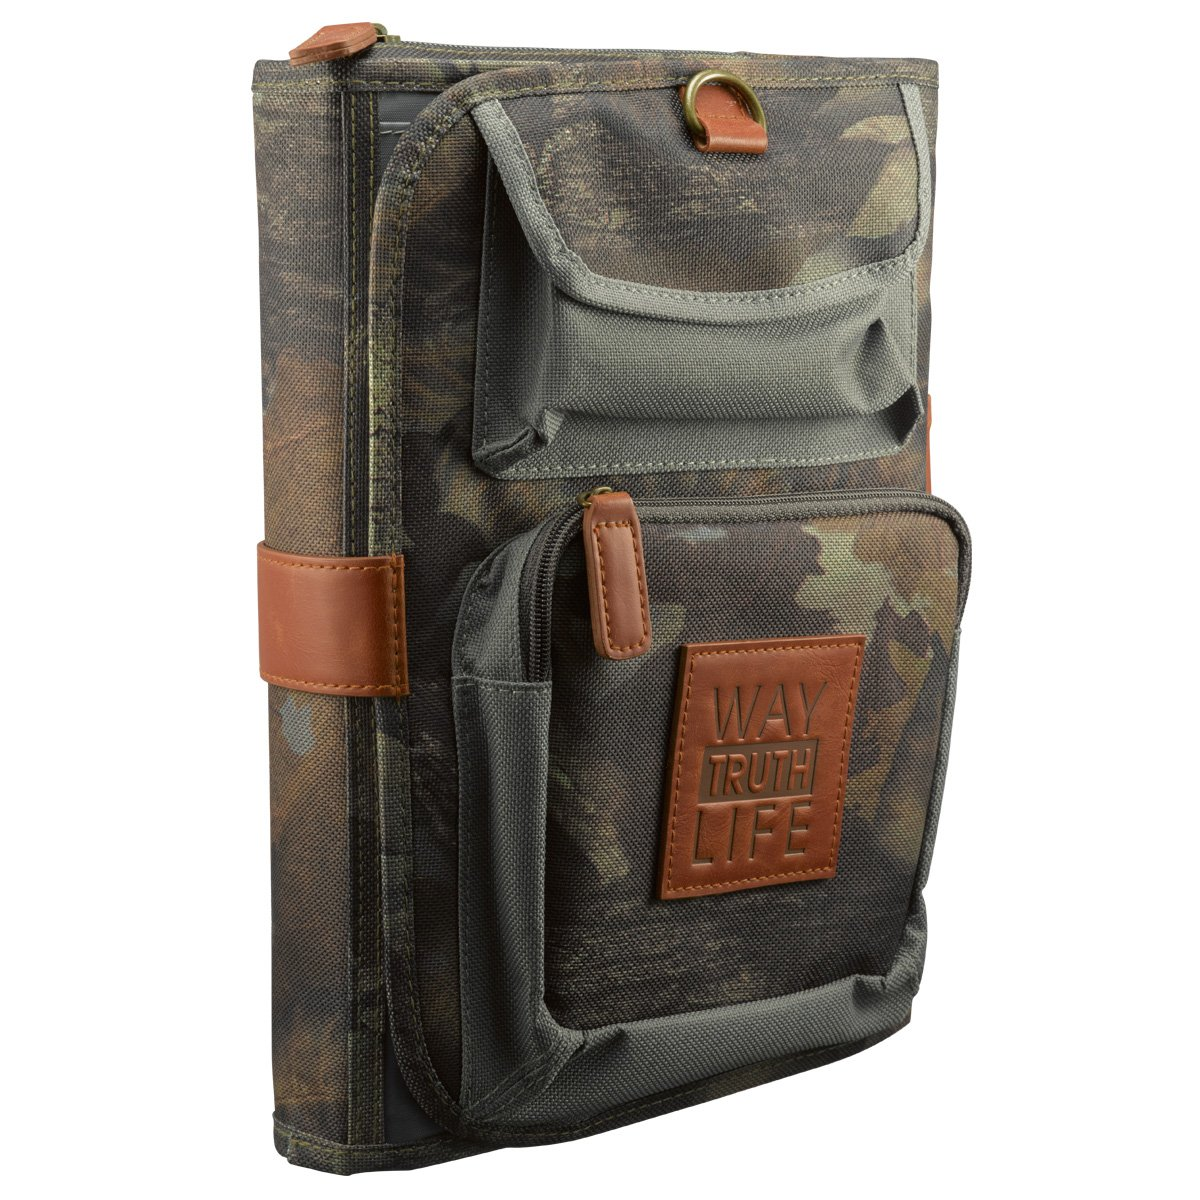 Tri-Fold Realtree Camo Bible / Book Organizer w/''Way-Truth-Life'' Badge (Large) by Christian Art Gifts